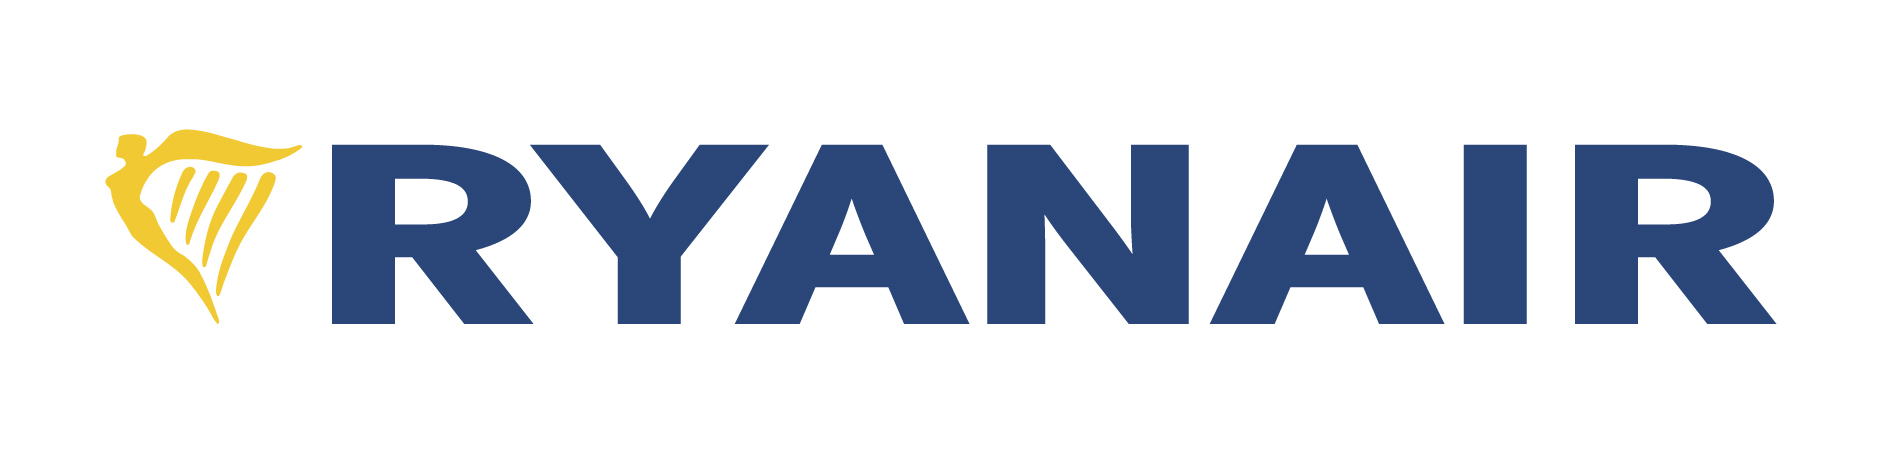 opportunities ryanair essay Ryanair swot analysis and also its external opportunities and threats the environmental case analysis of ryanair commerce essay.